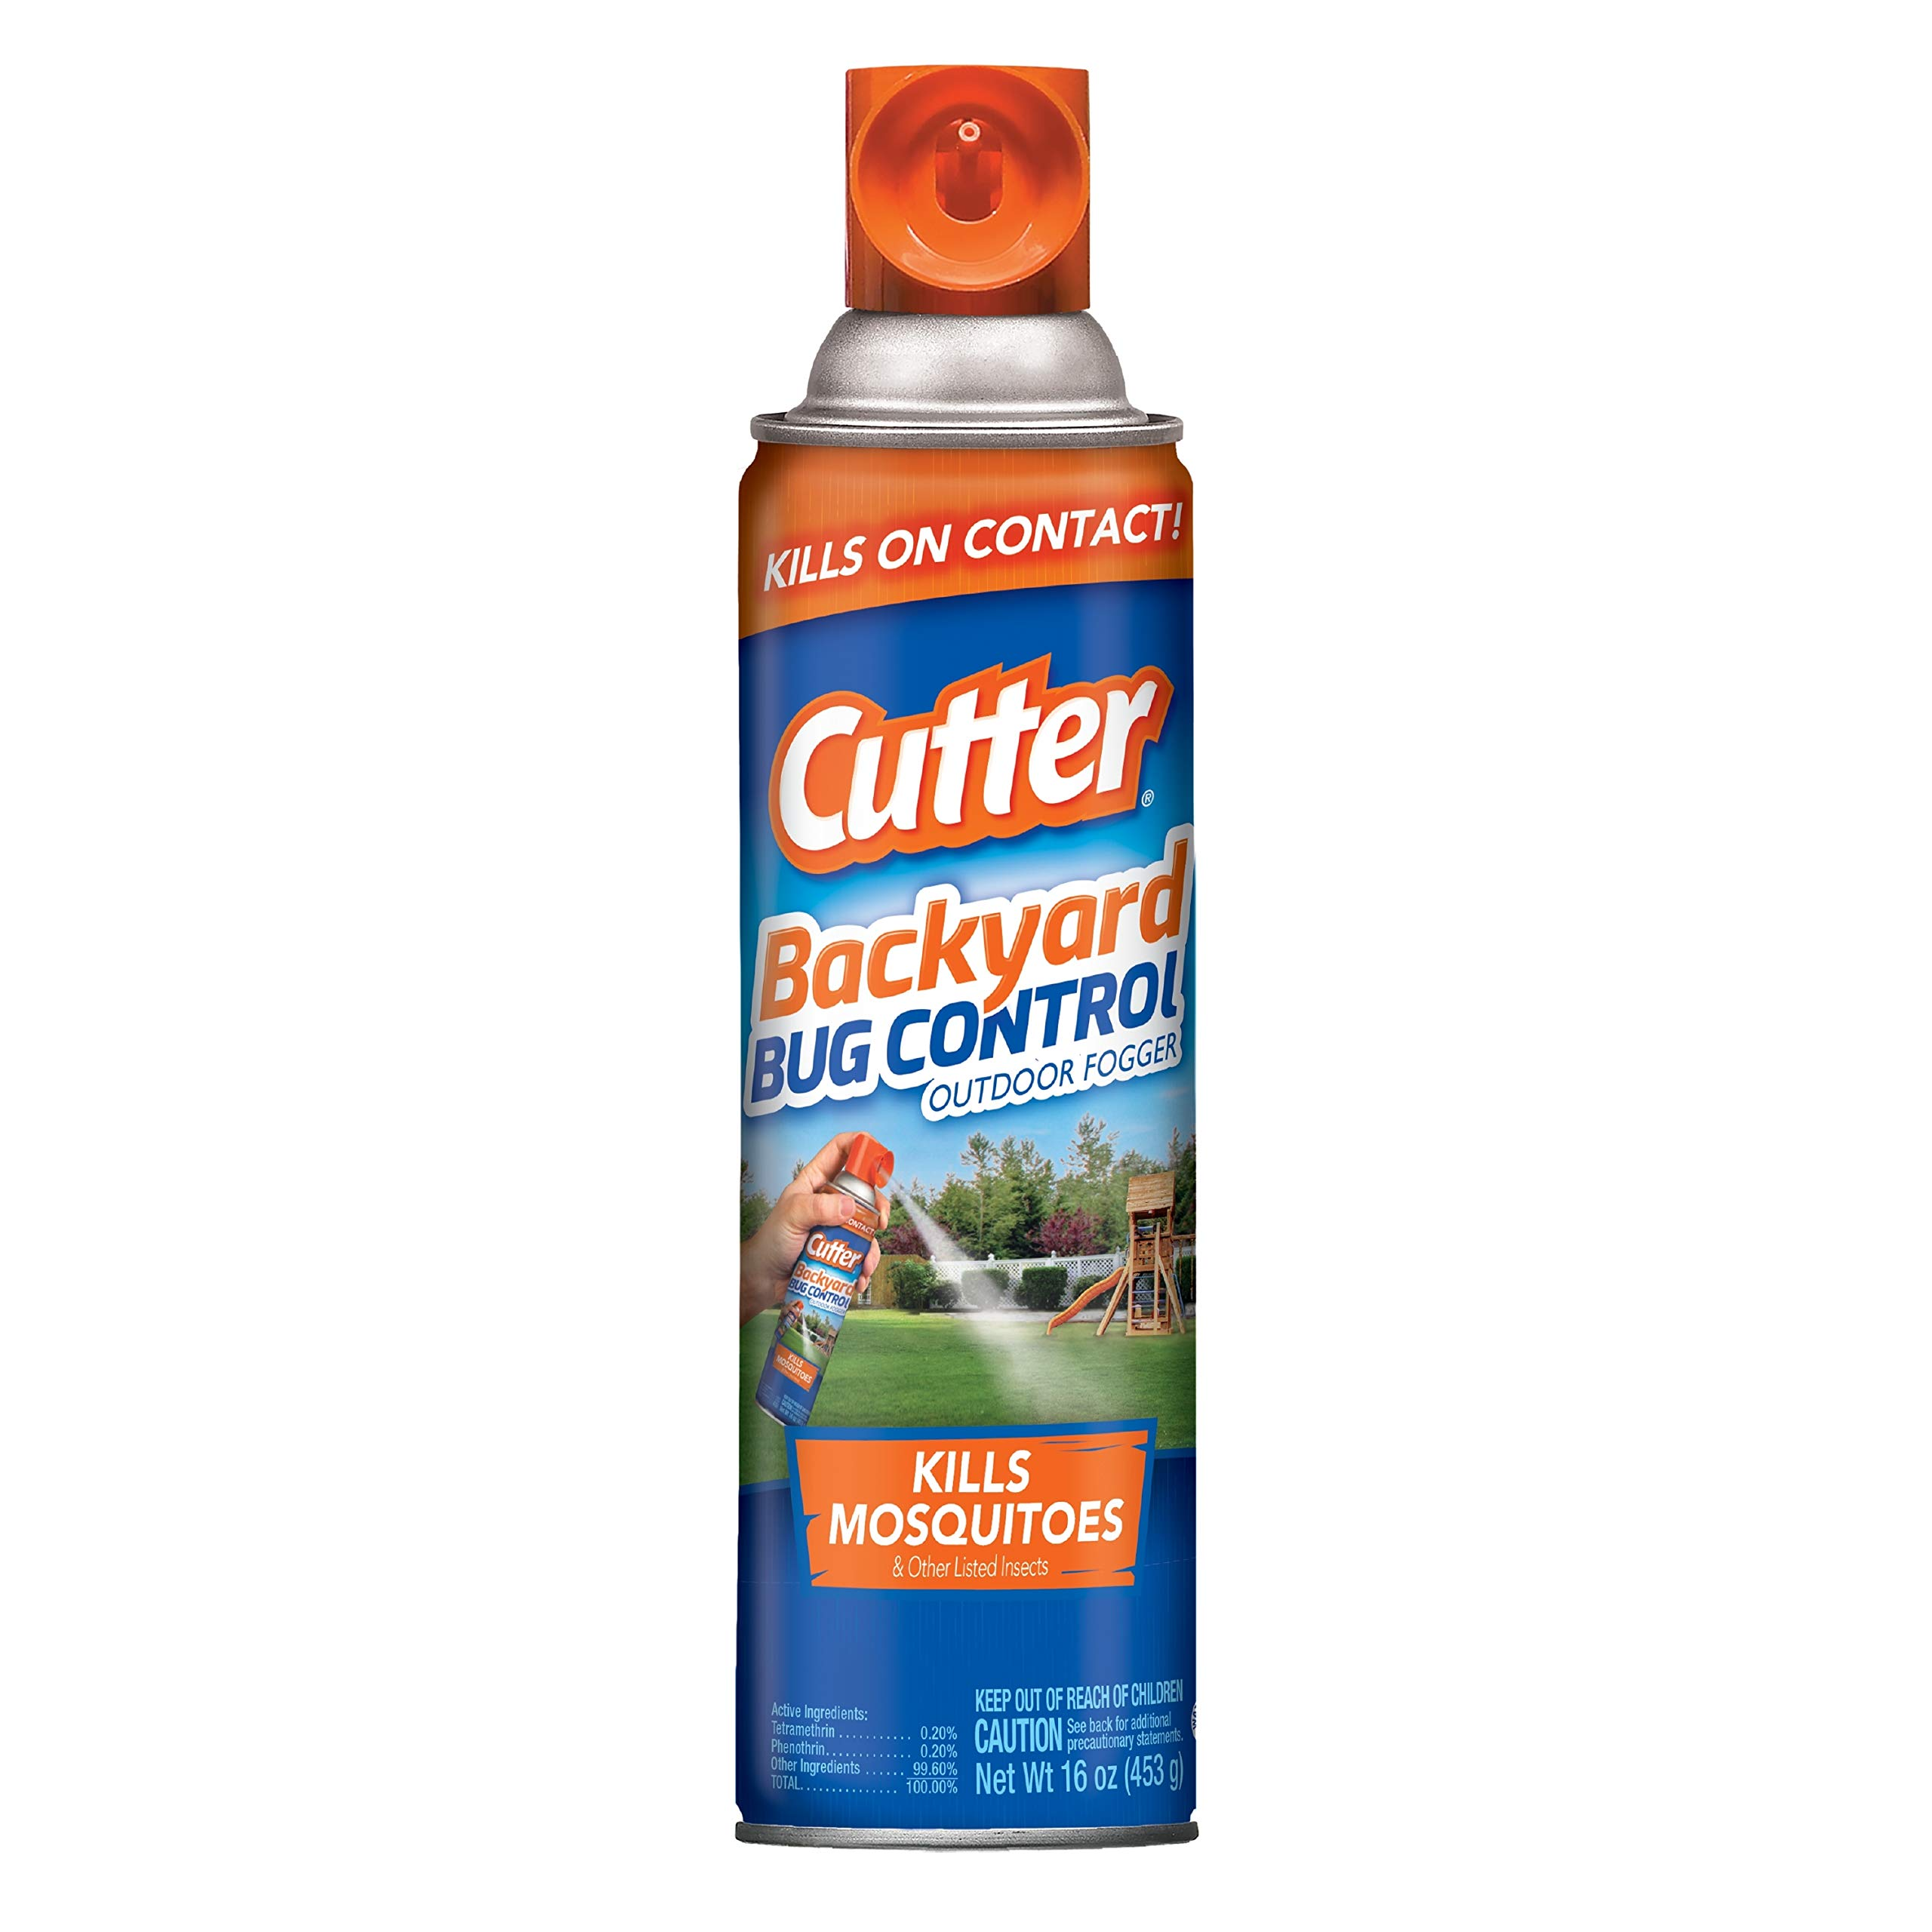 Cutter Backyard Bug Control Outdoor Fogger (HG-65704), Pack of 6 by Cutter